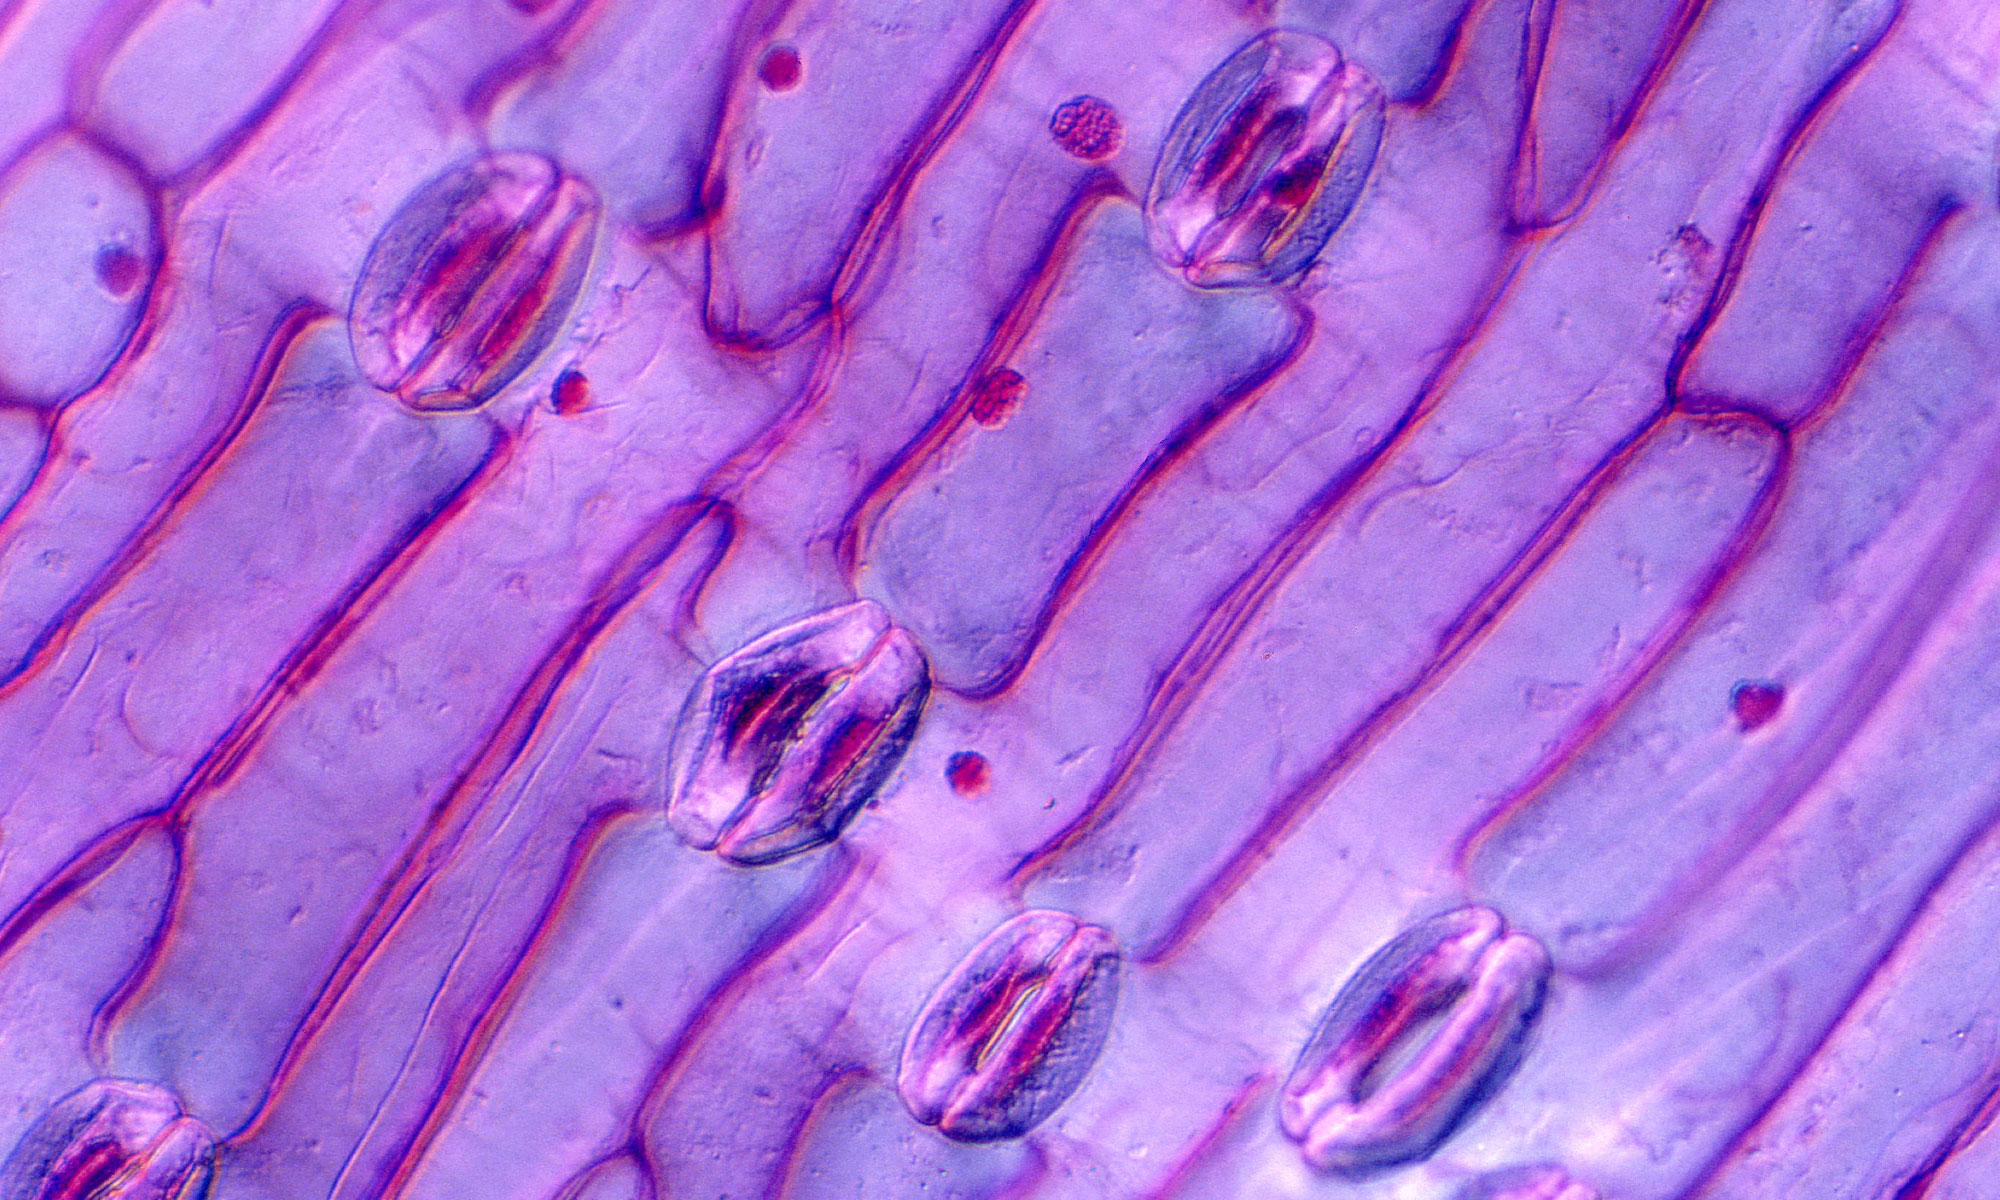 Image of Leaf Stomata